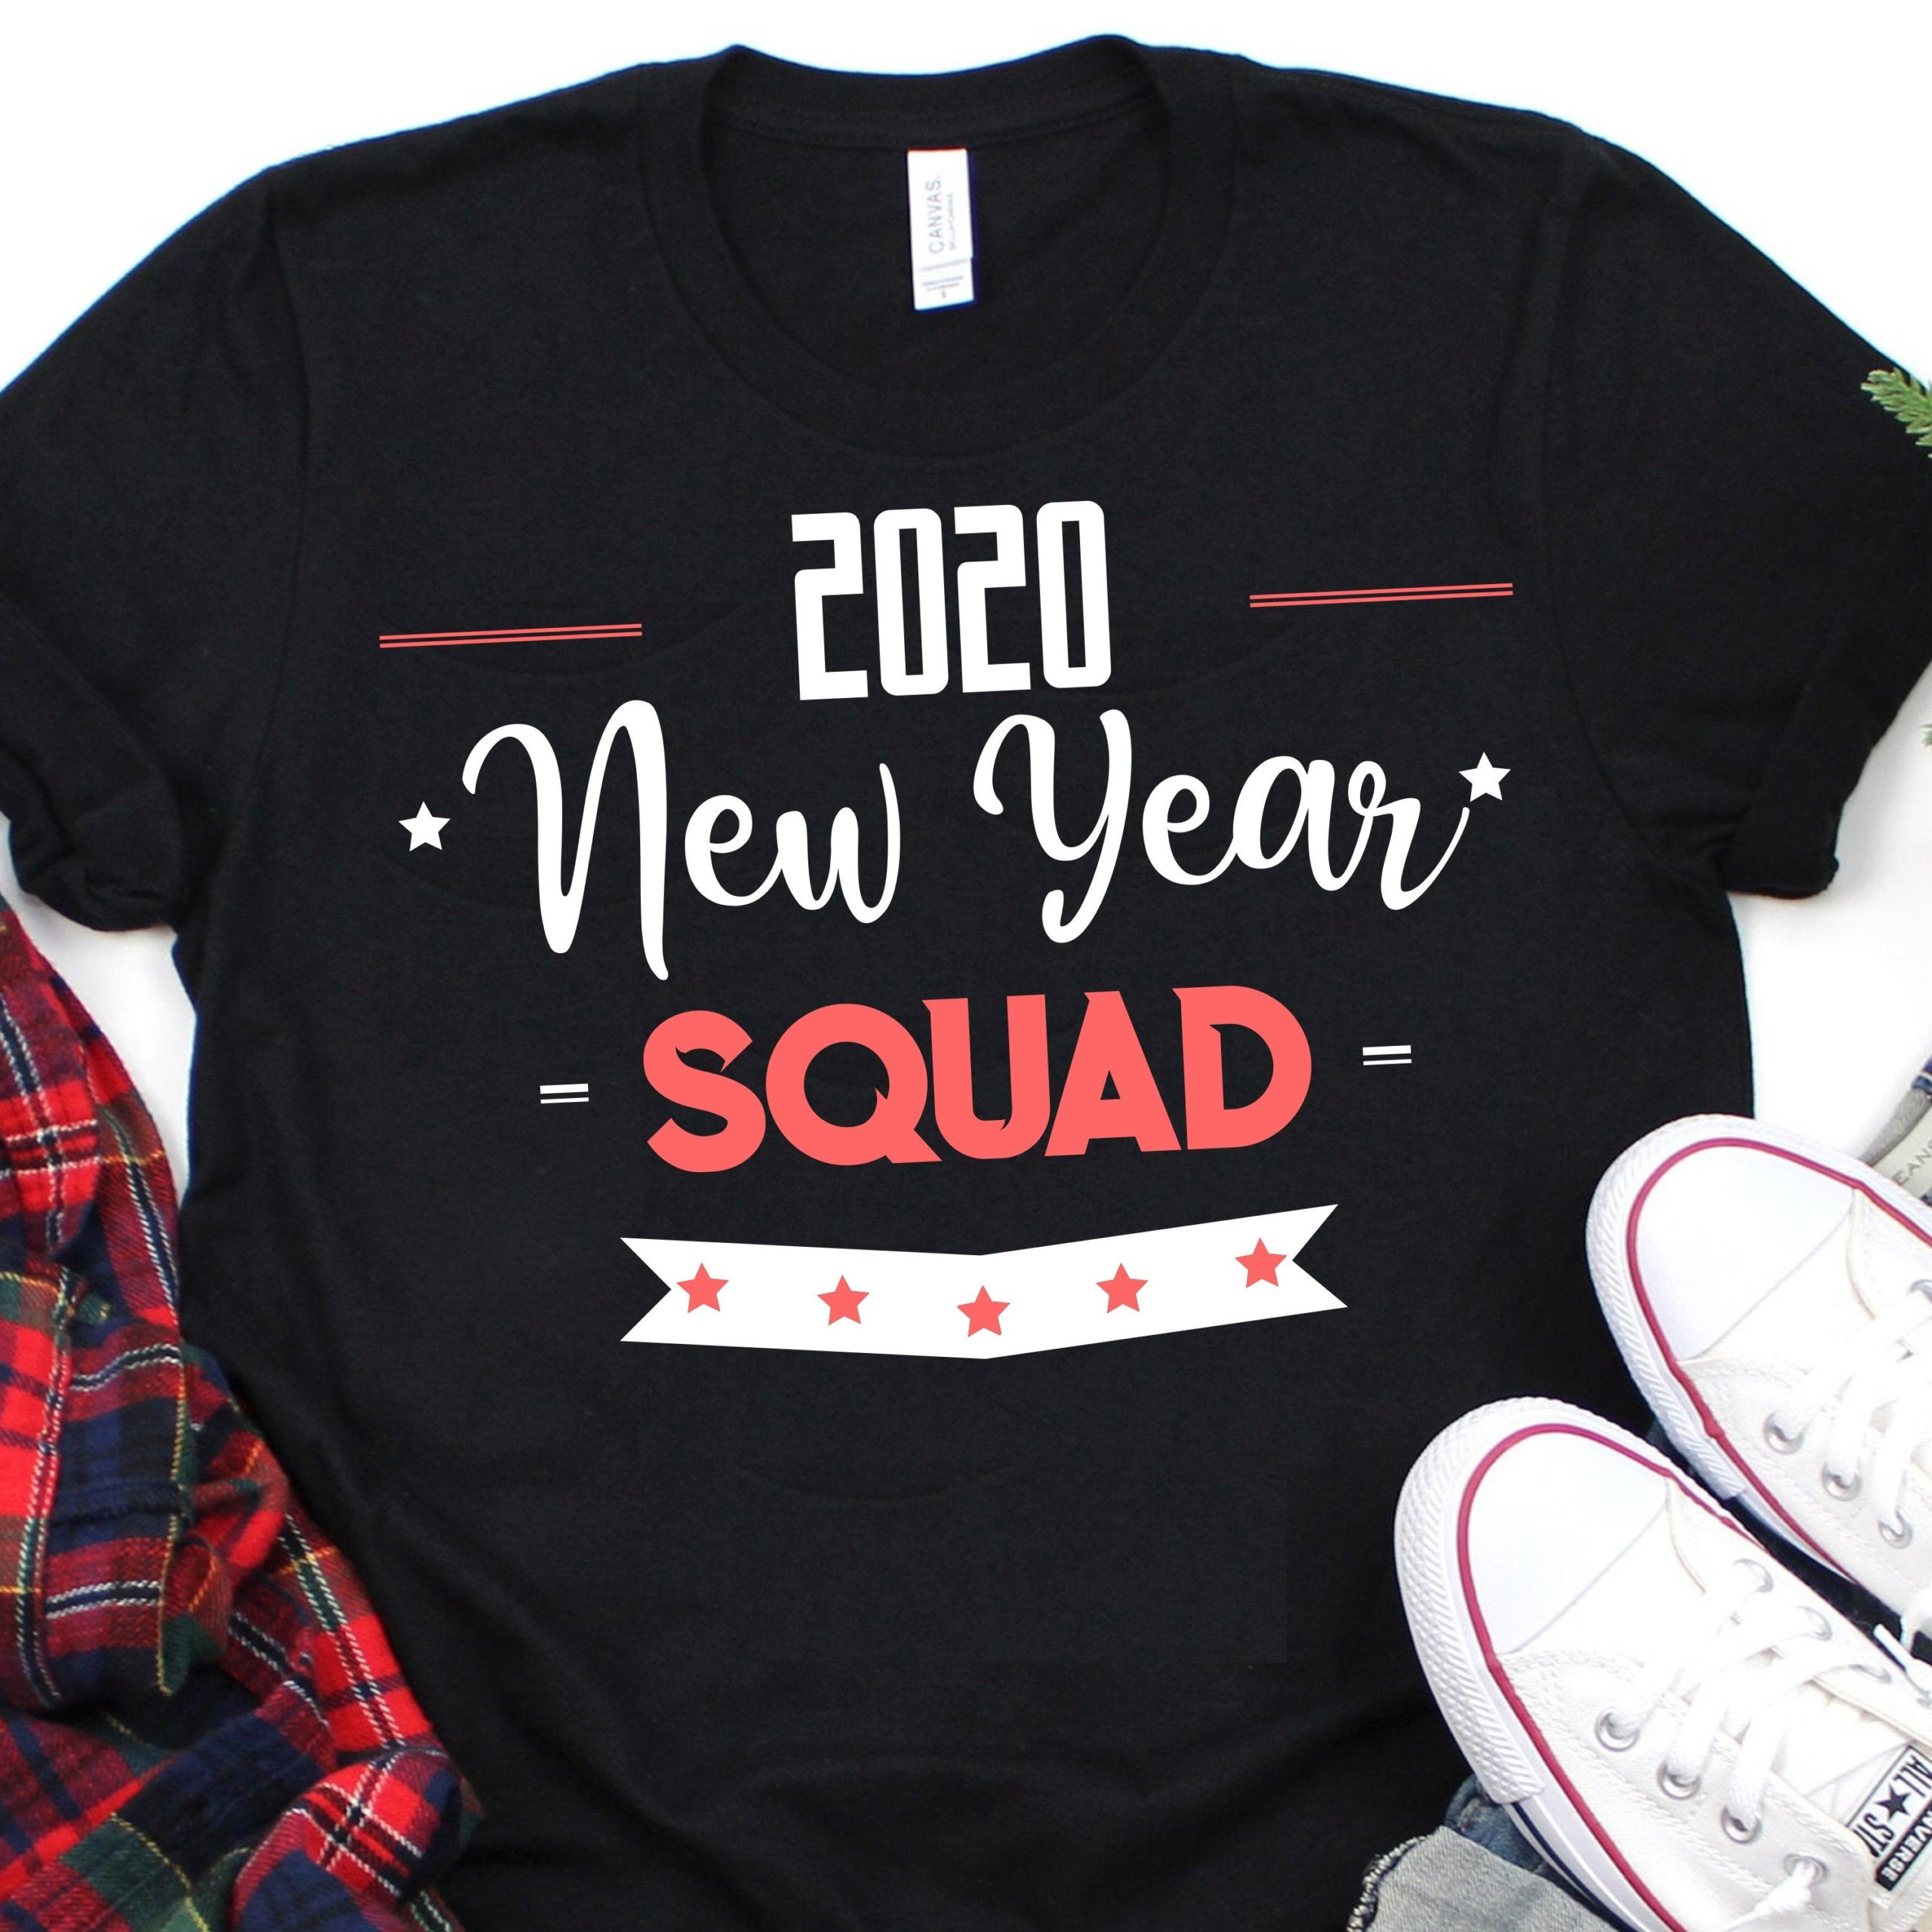 New-year-squad-svgnew-year-svghot-mess-svghappy-new-year-svgnew-year-shirt-svgnew-year-tshirtsvg-for-cricut2020-happy-new-year-svg-2-5e221102